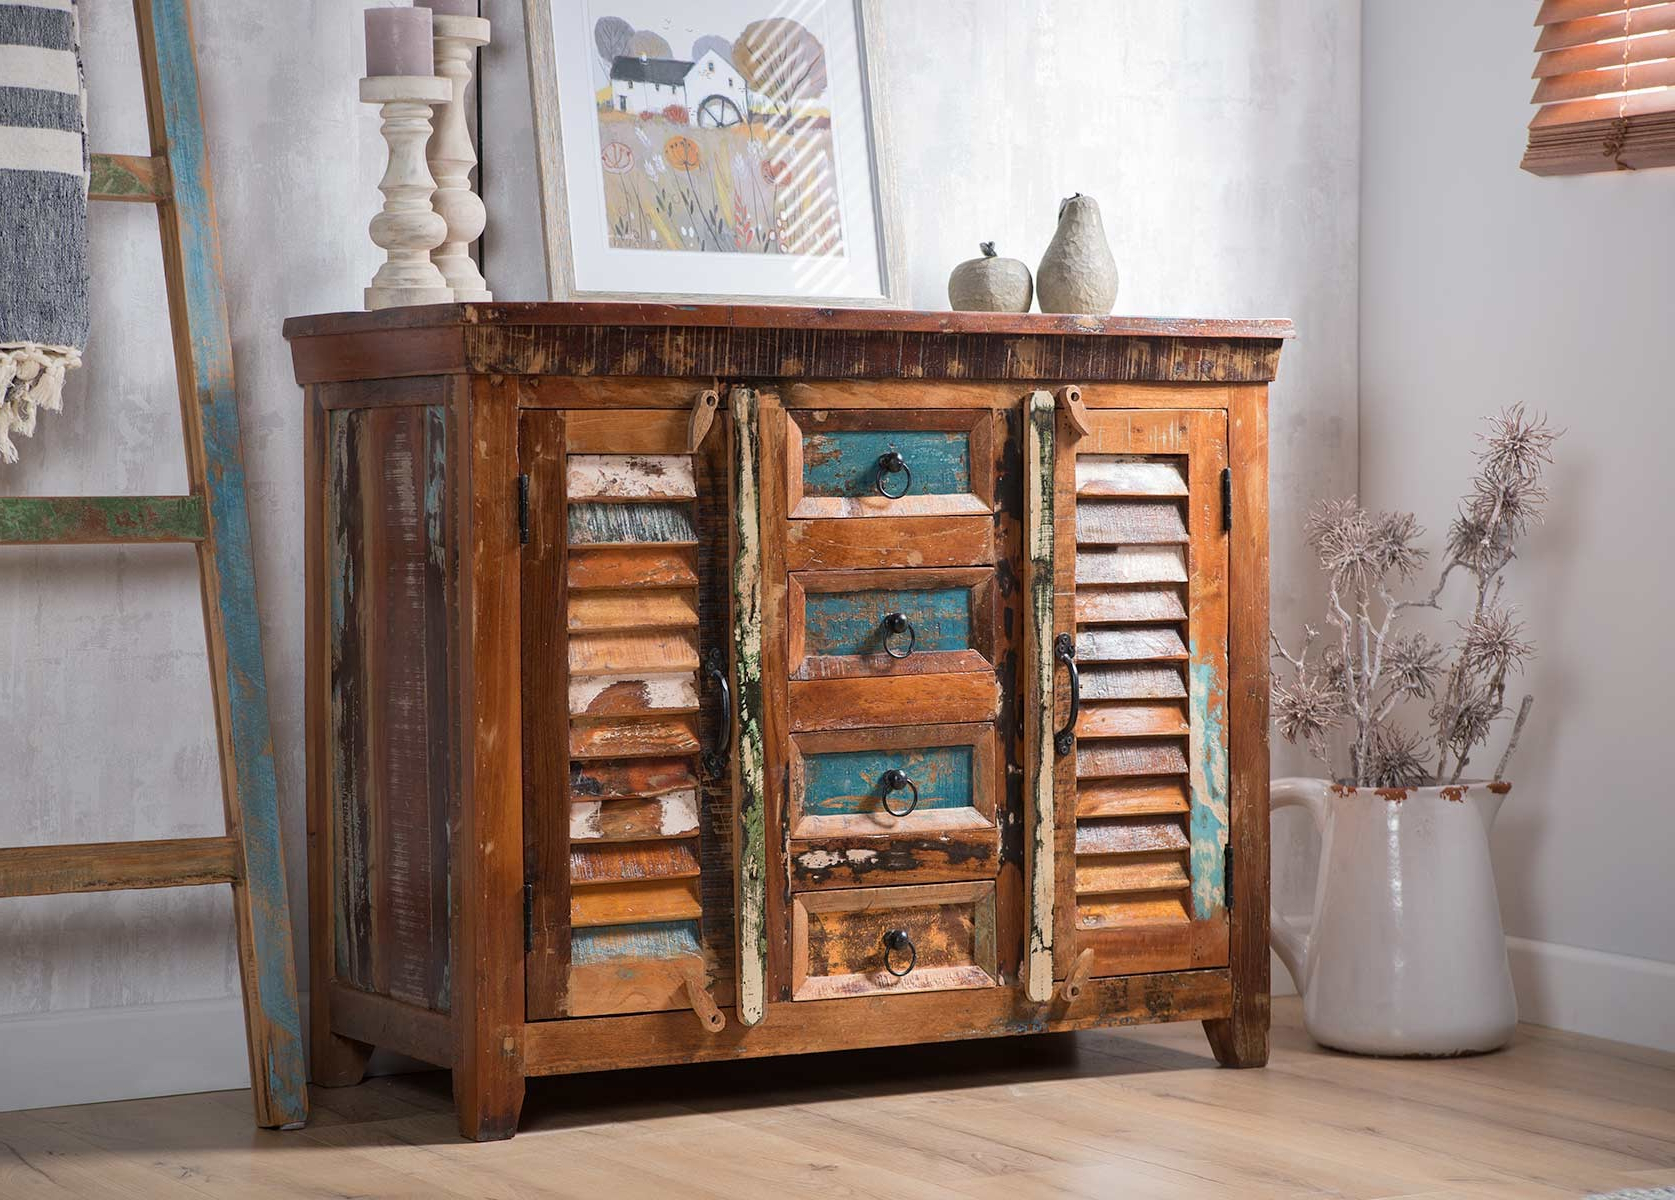 Casa Bella Furniture Uk With Regard To Most Popular Reclaimed Pine Turquoise 4 Door Sideboards (Gallery 15 of 20)